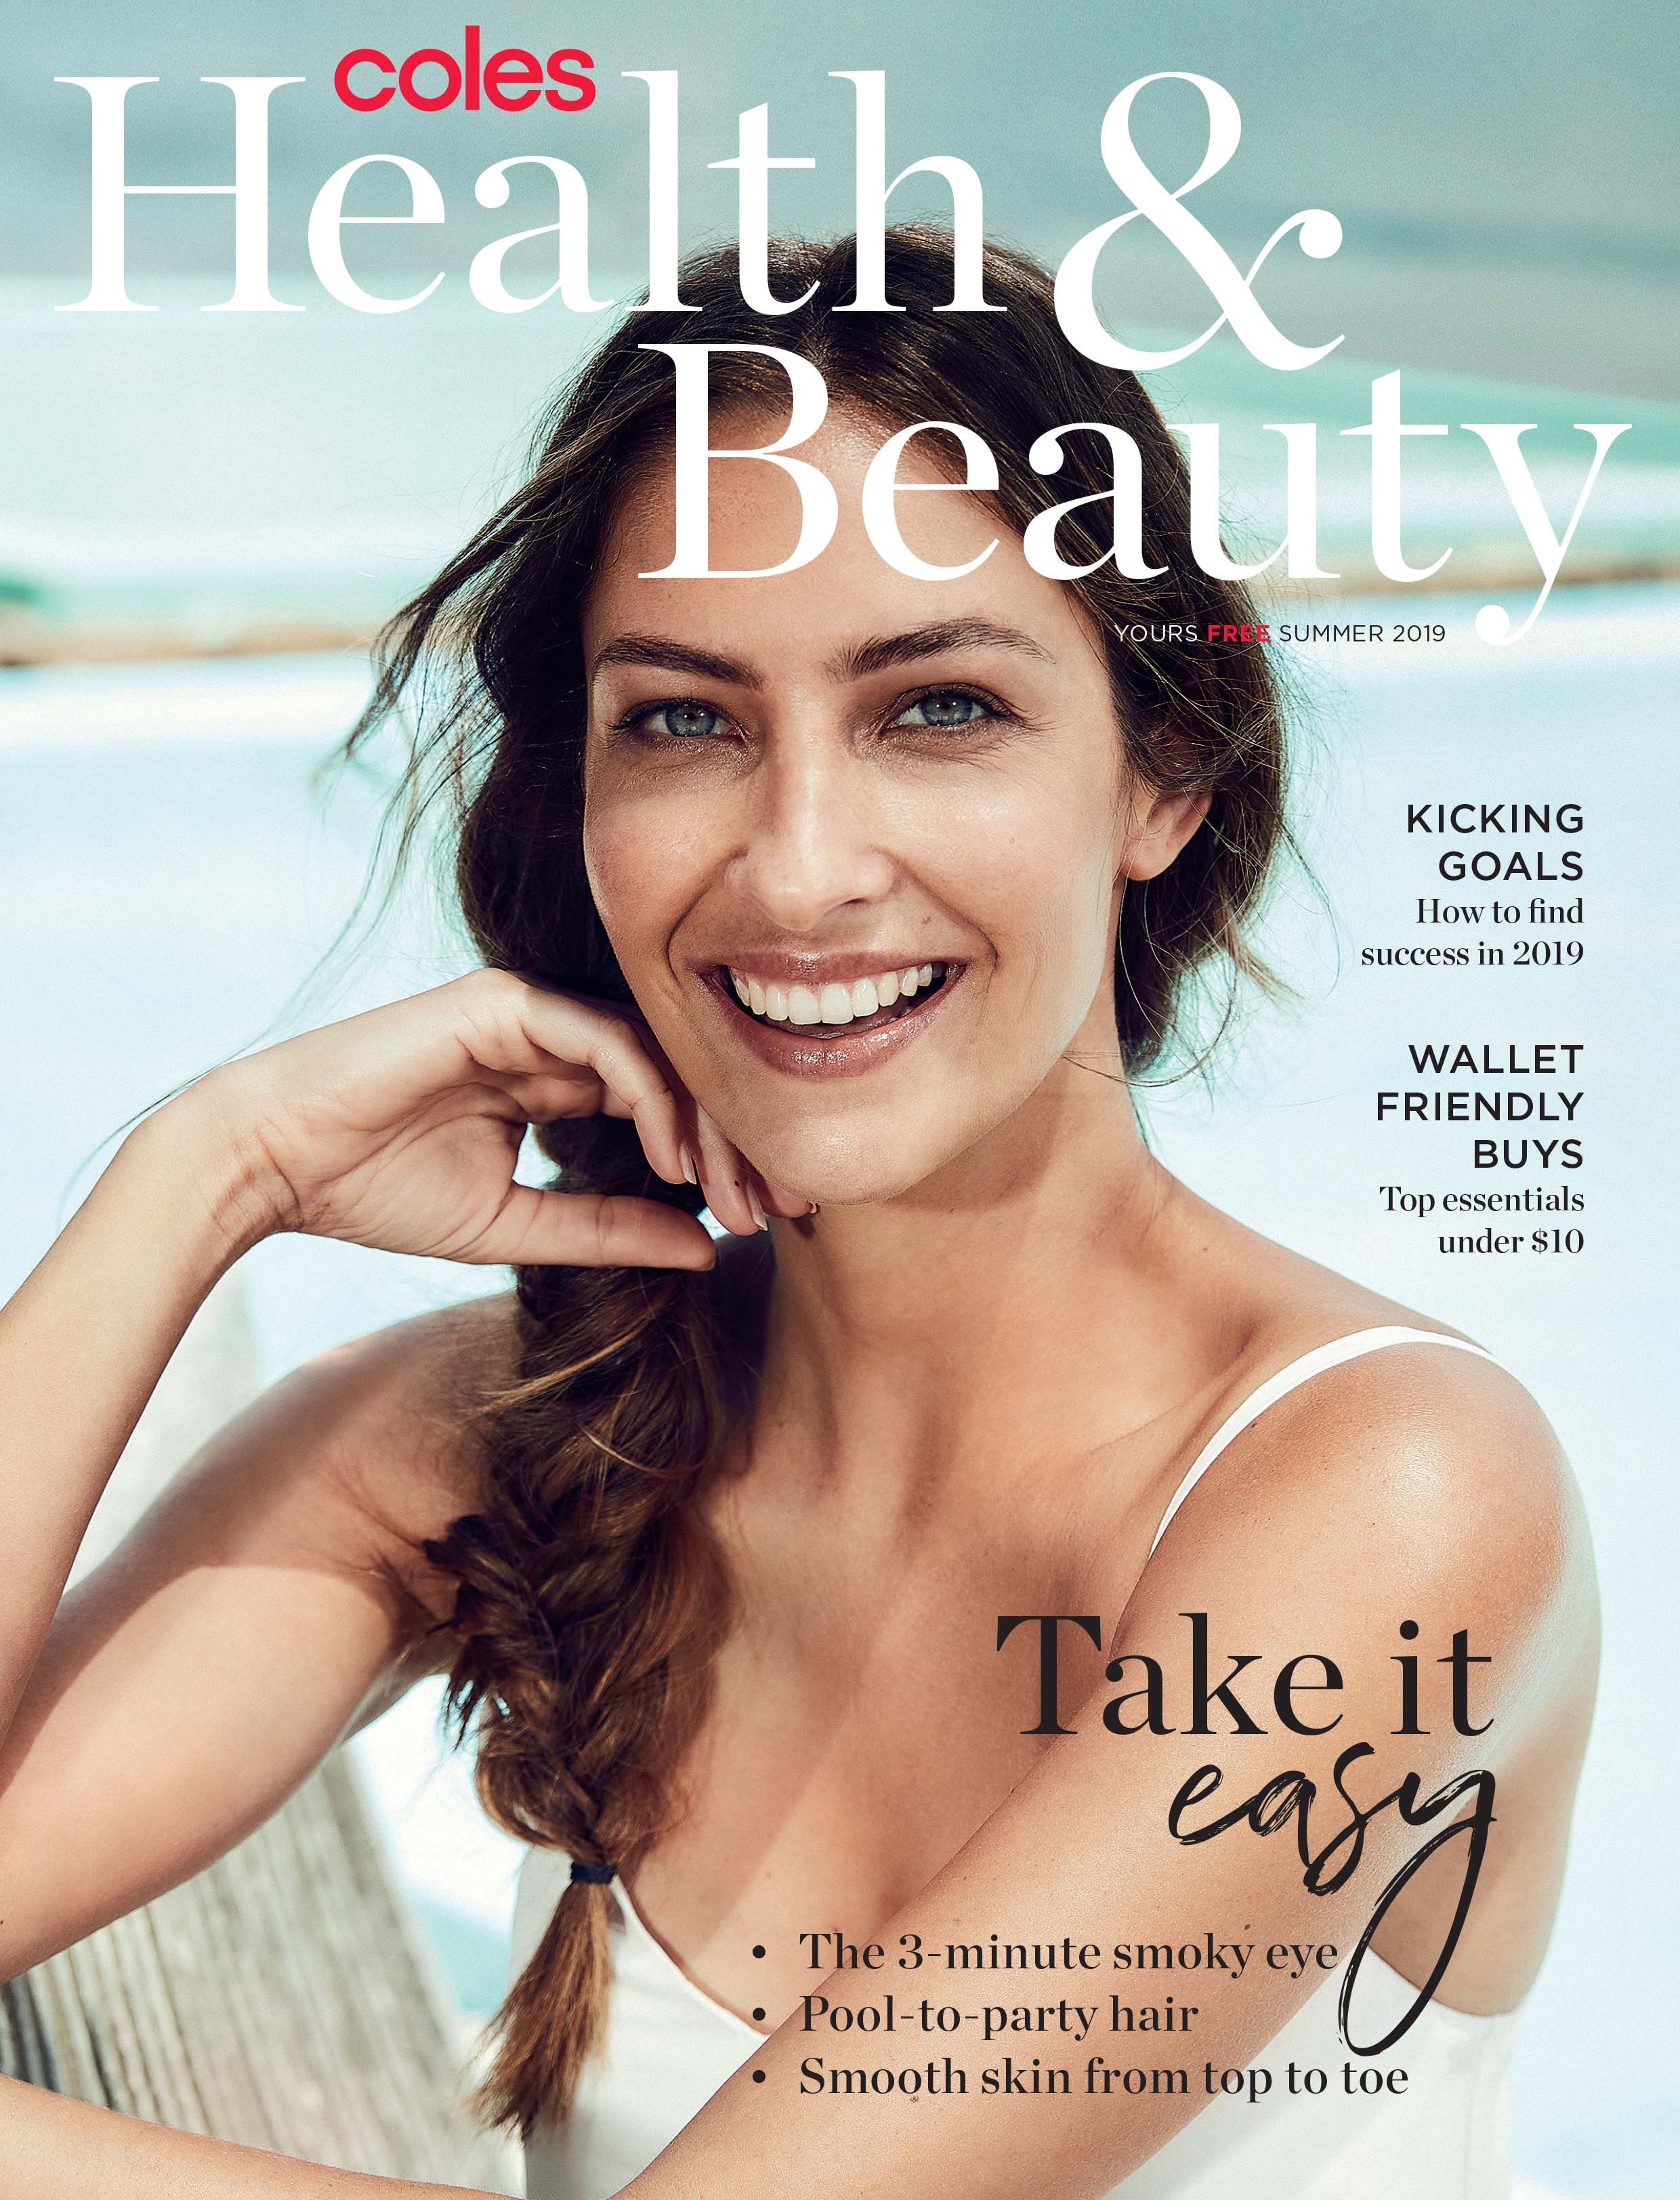 Coles Health & Beauty cover